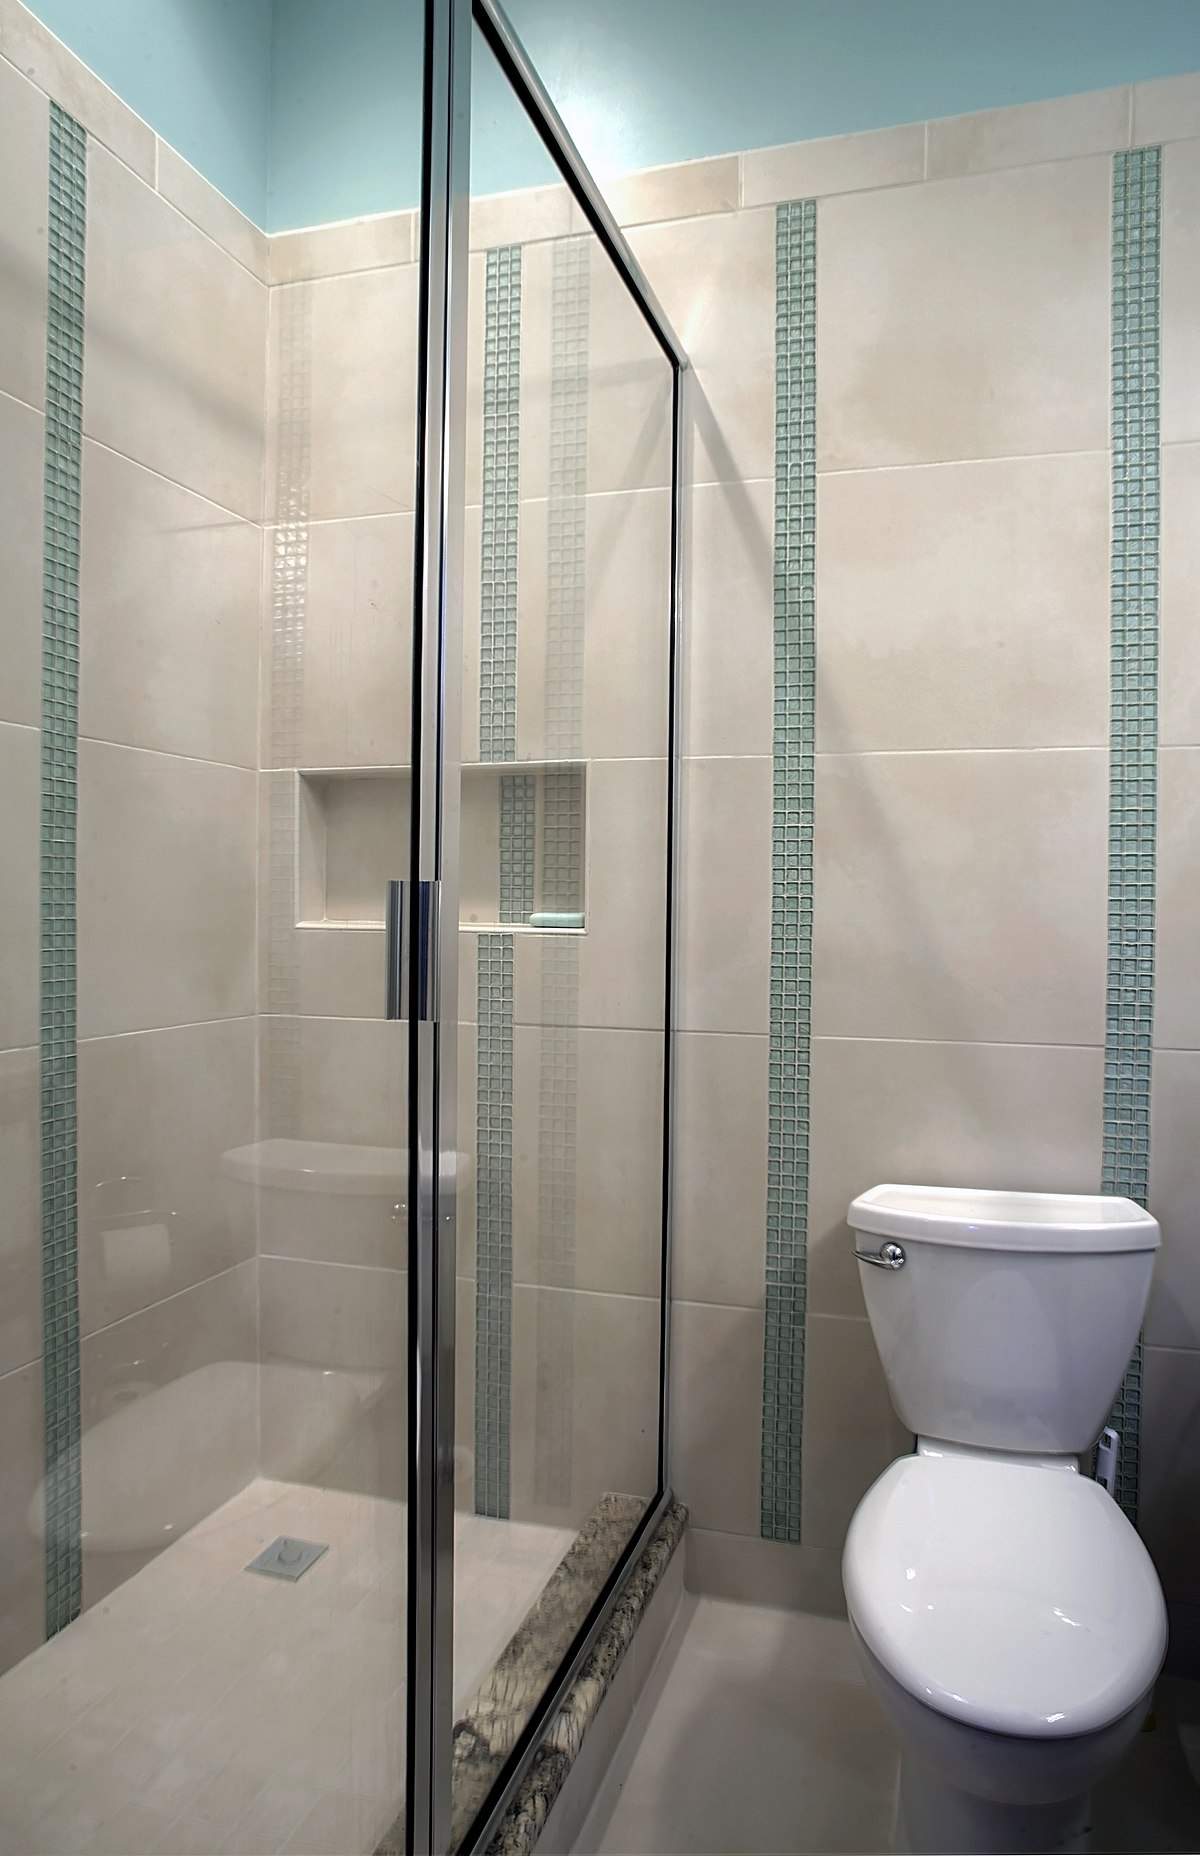 Bathroom Wikipedia - Images of bathroom showers for bathroom decor ideas